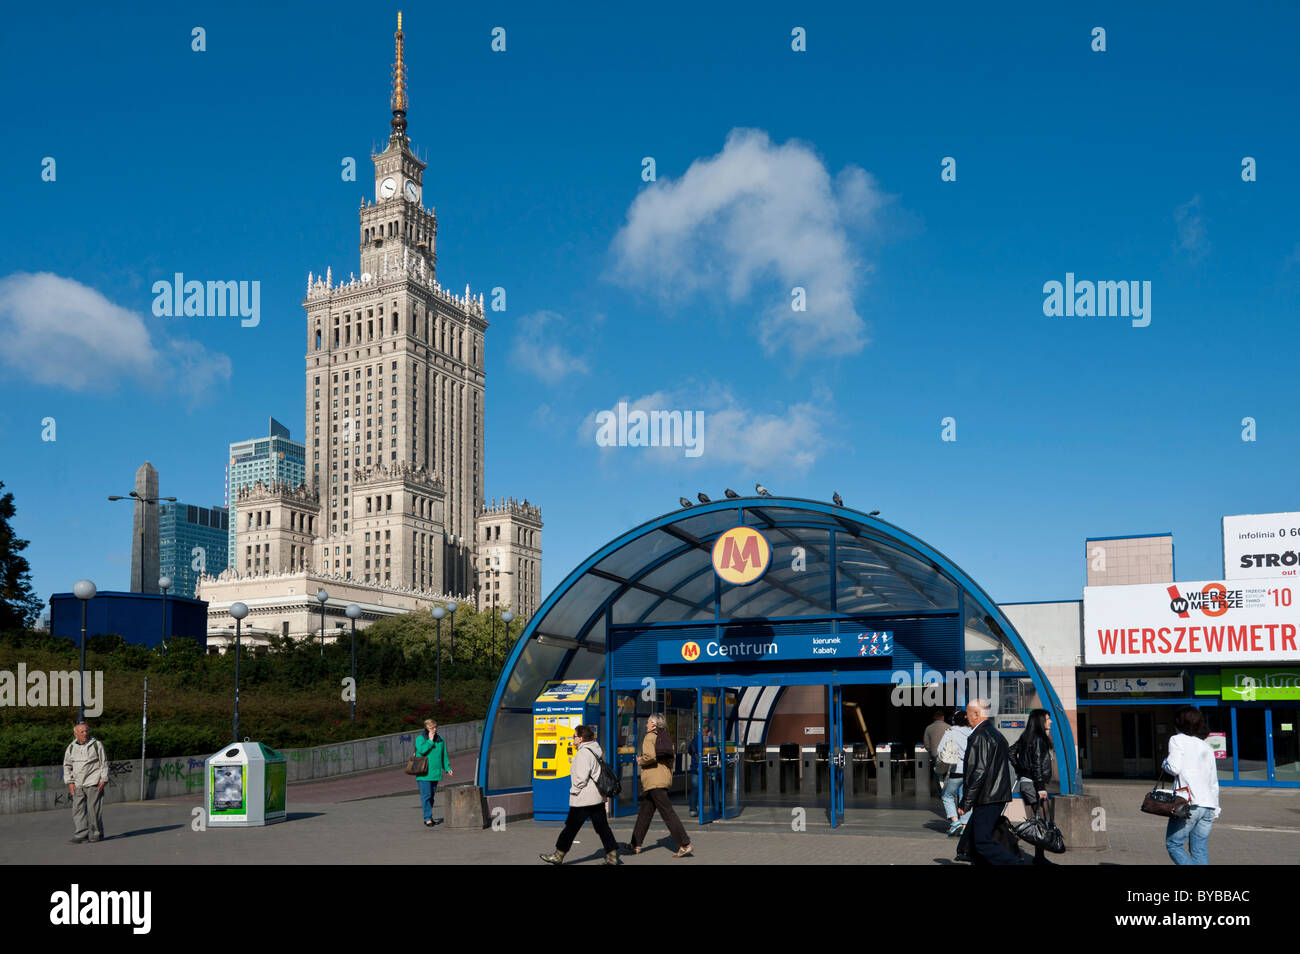 Palace Of Culture And Science High Rise Building In A Wedding Cake Style Landmark Warsaw Mazowieckie Poland Europe